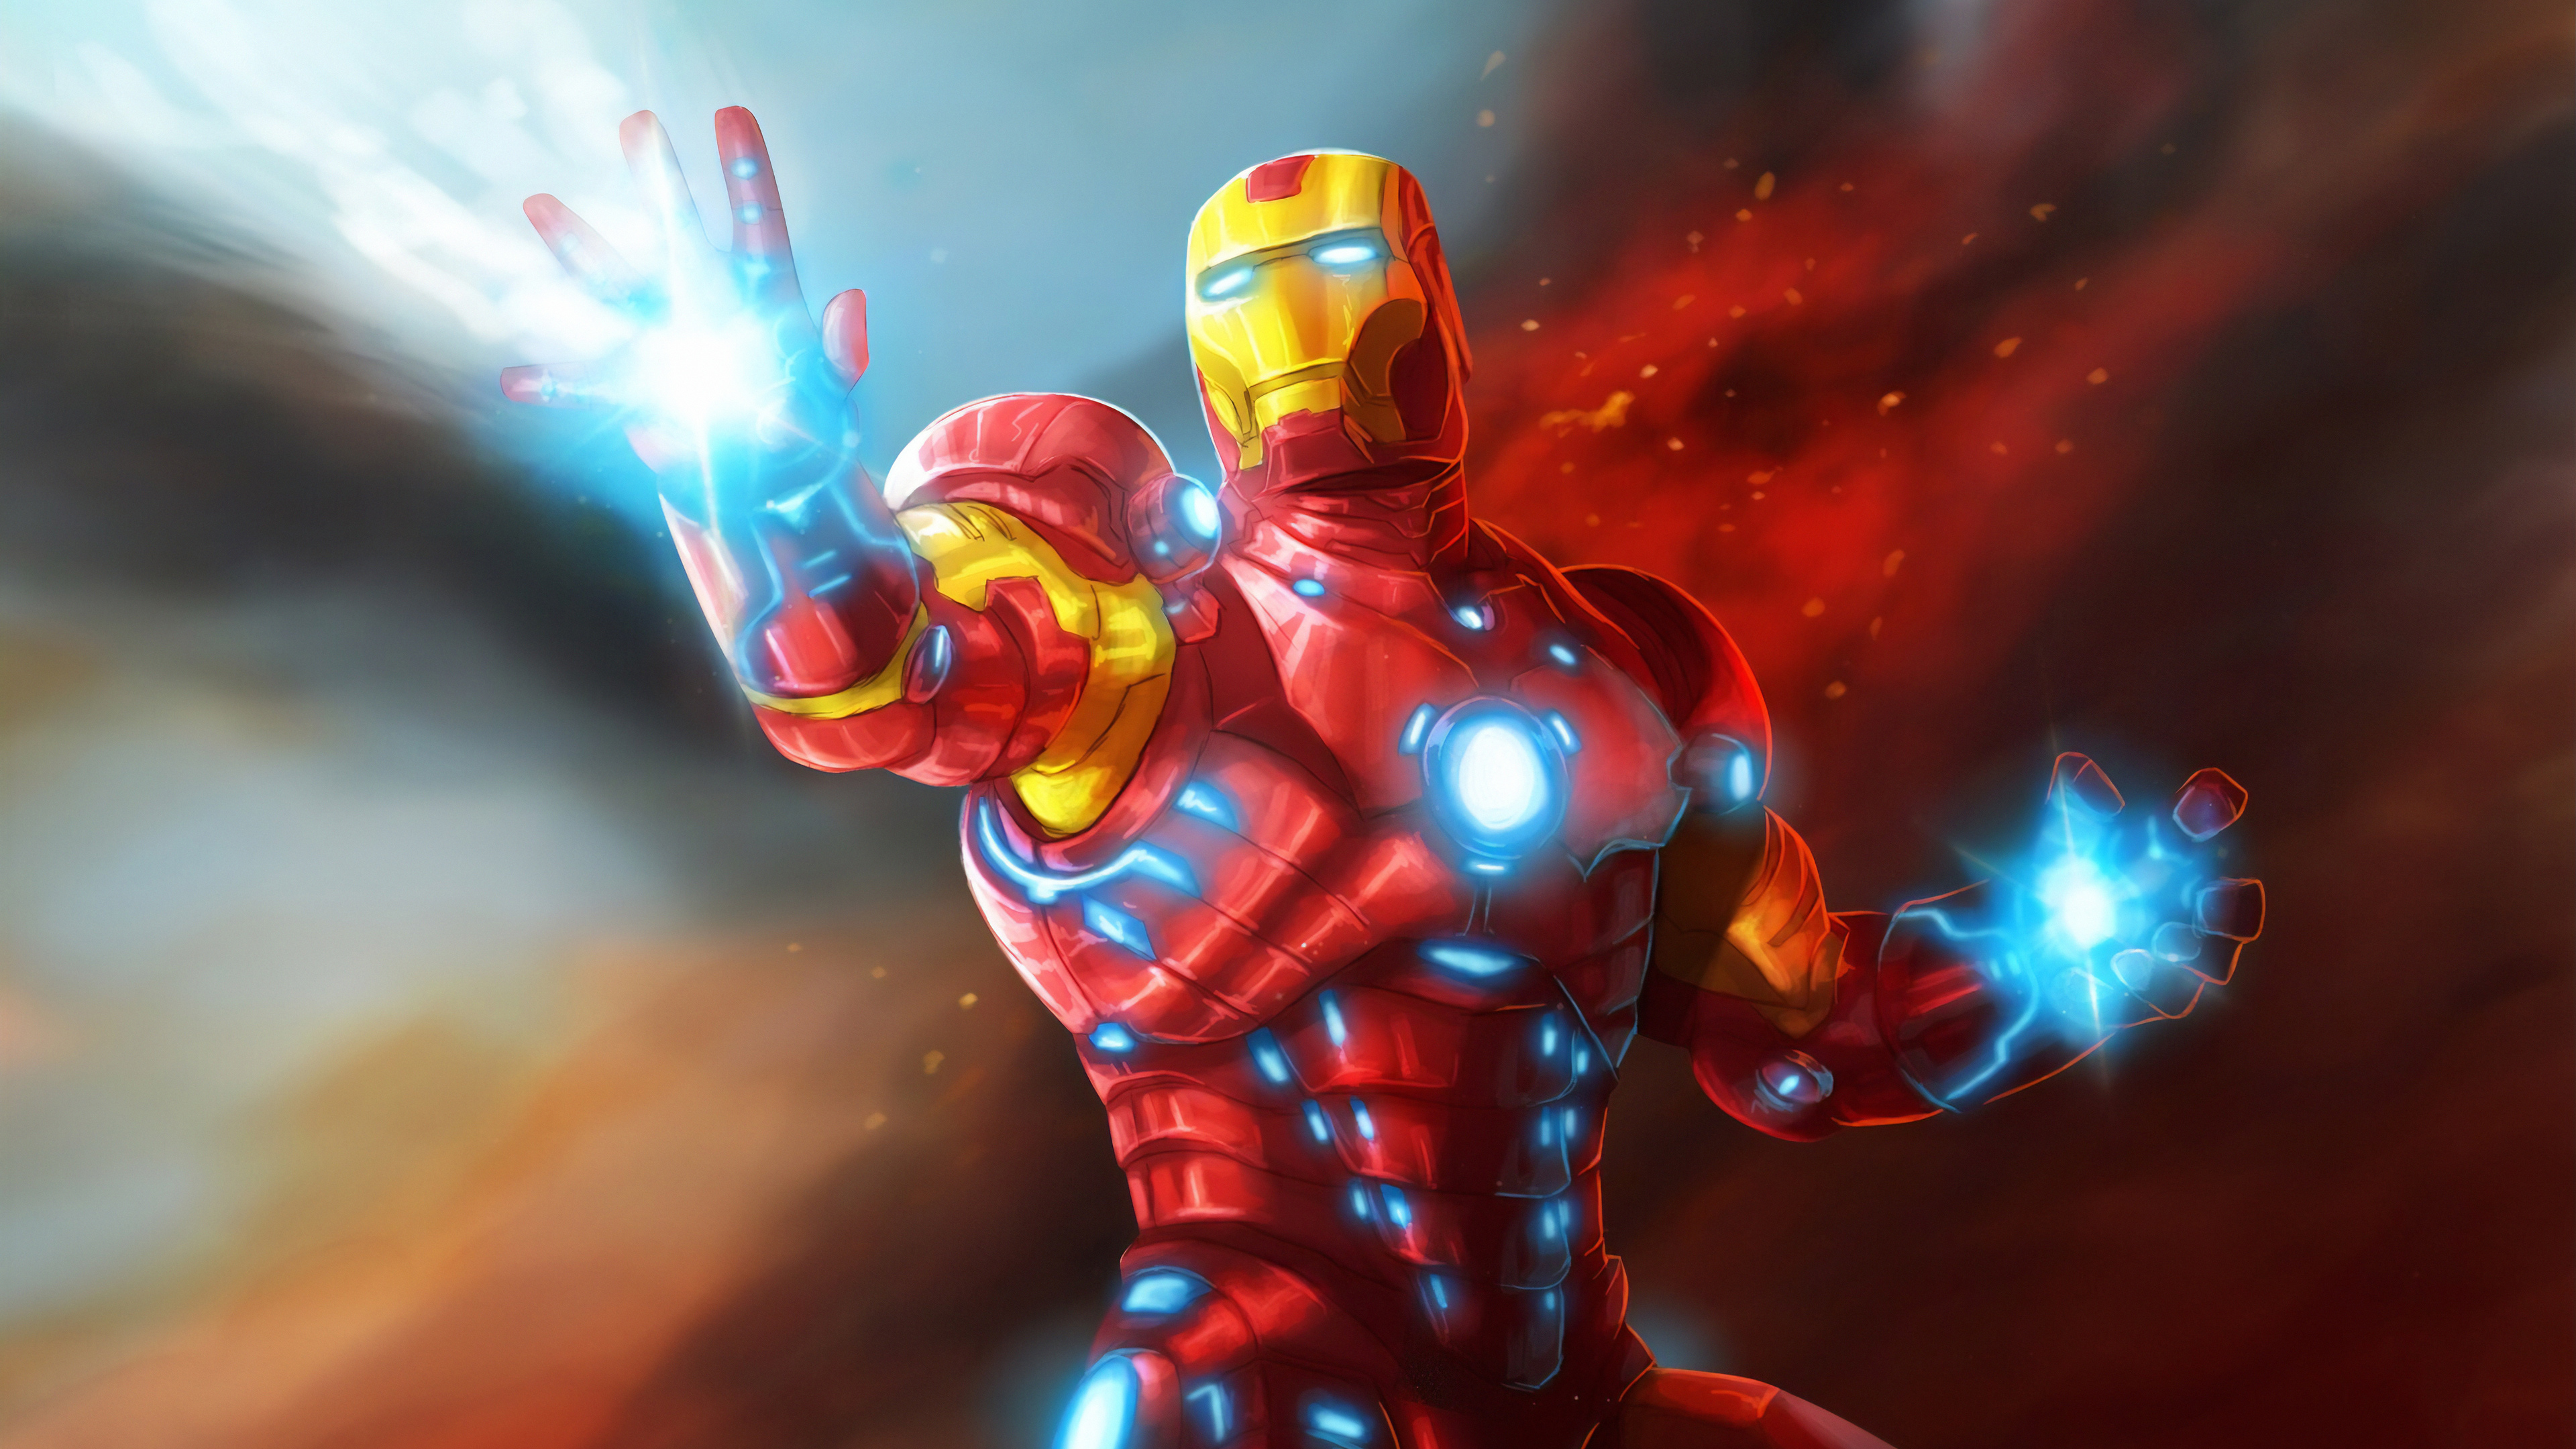 iron man new art 1570394395 - Iron Man New art - superheroes wallpapers, iron man wallpapers, hd-wallpapers, digital art wallpapers, artwork wallpapers, artstation wallpapers, 4k-wallpapers